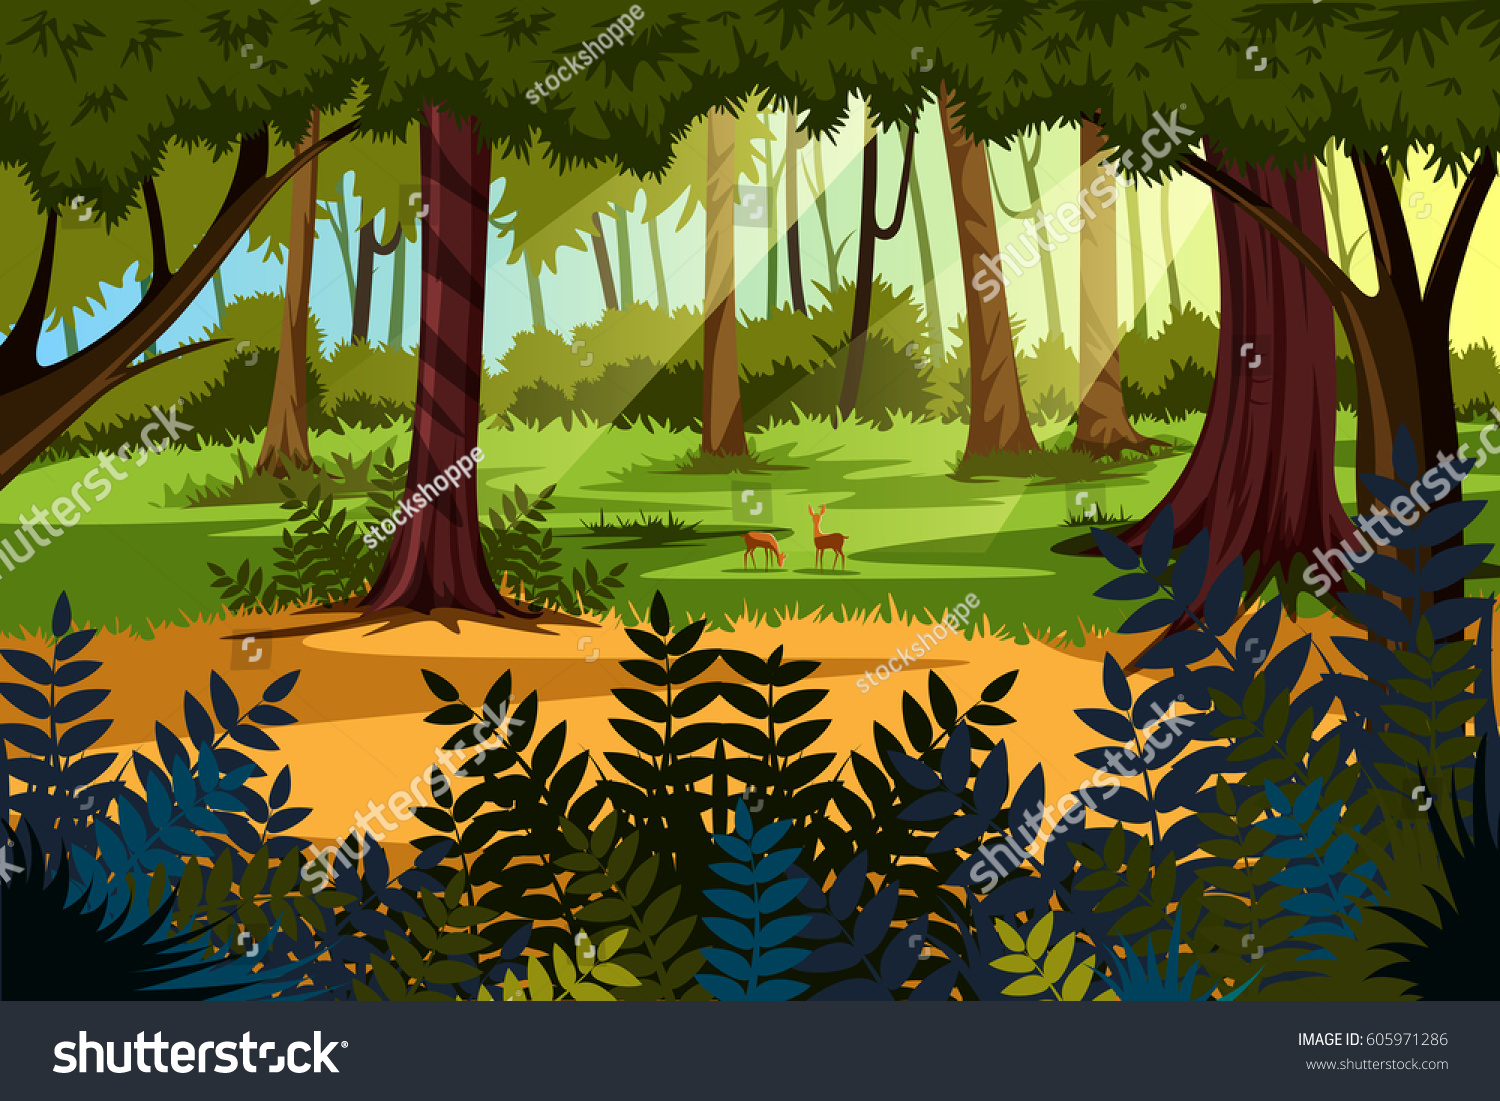 vector illustration nature landscape scenery background stock vector